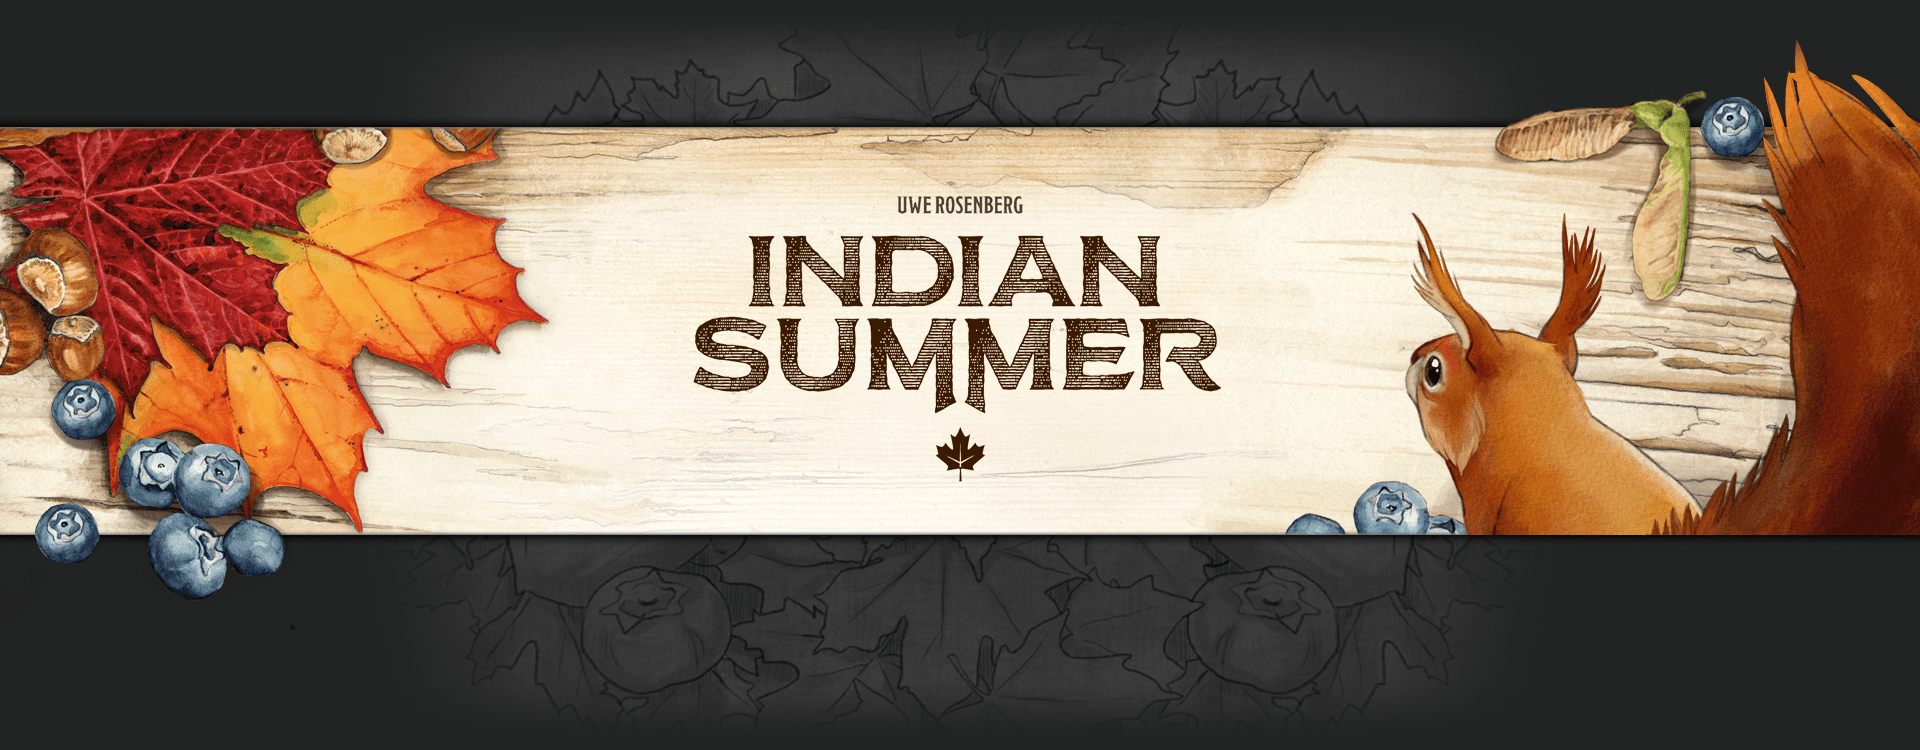 Indian Summer header image (4 player family puzzle game)